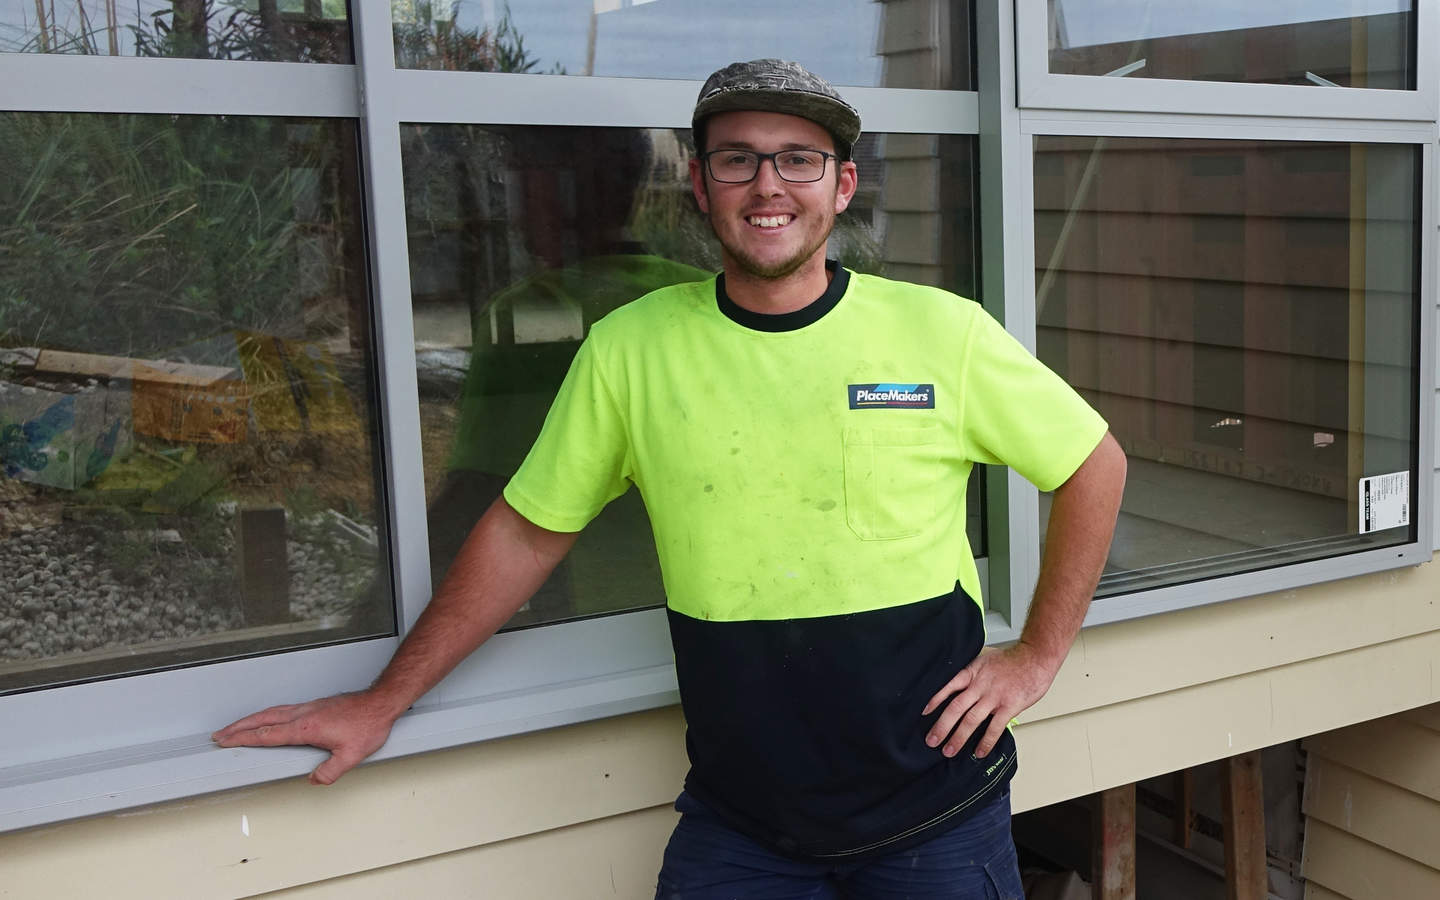 Bradley Heath builds houses for a living - but says he'll have to move out of Auckland to buy his own.